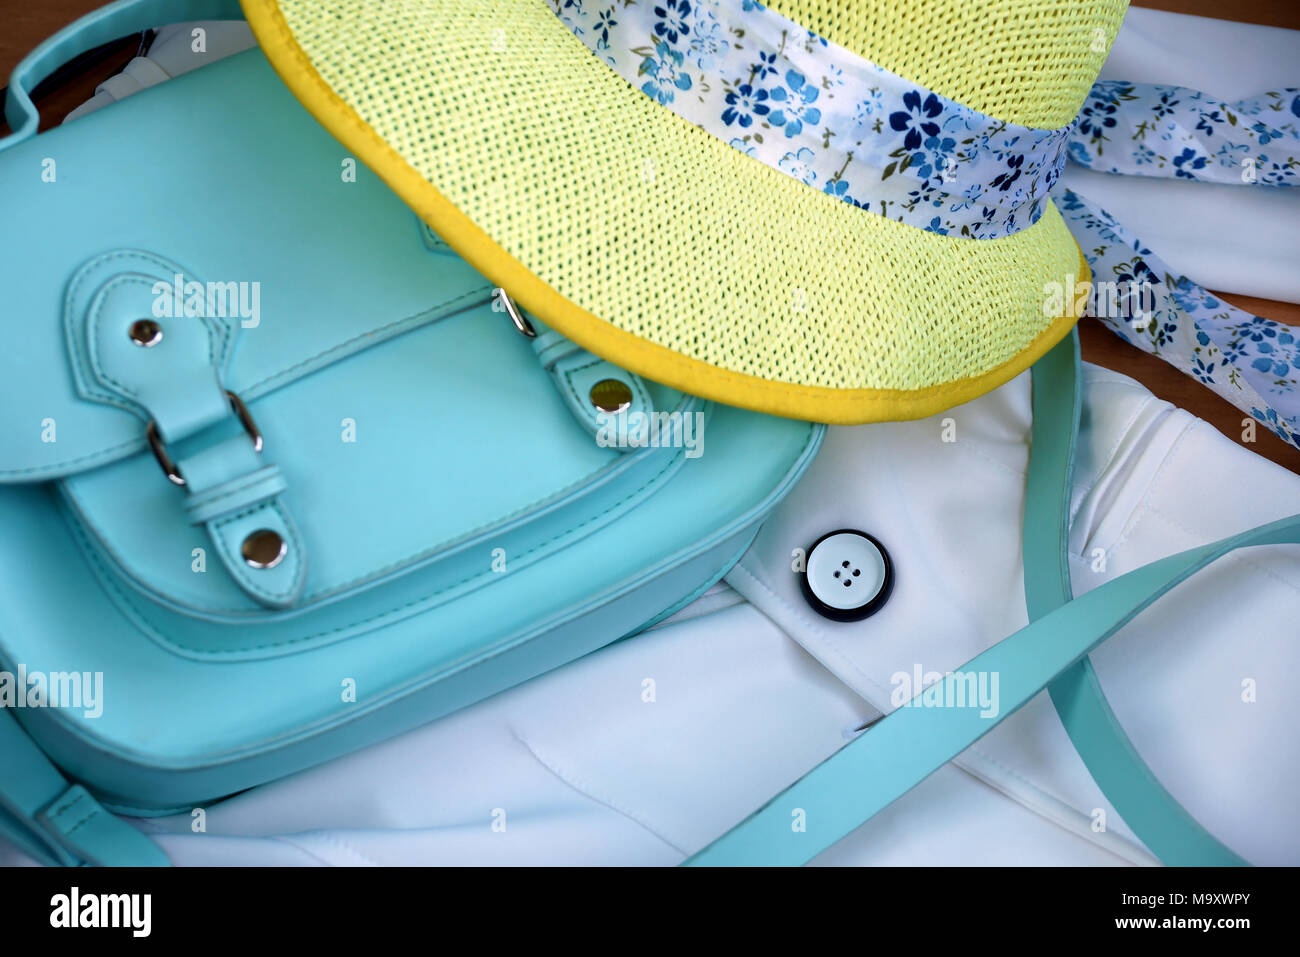 Women turquoise bag and yellow hat on a white jacket - Stock Image